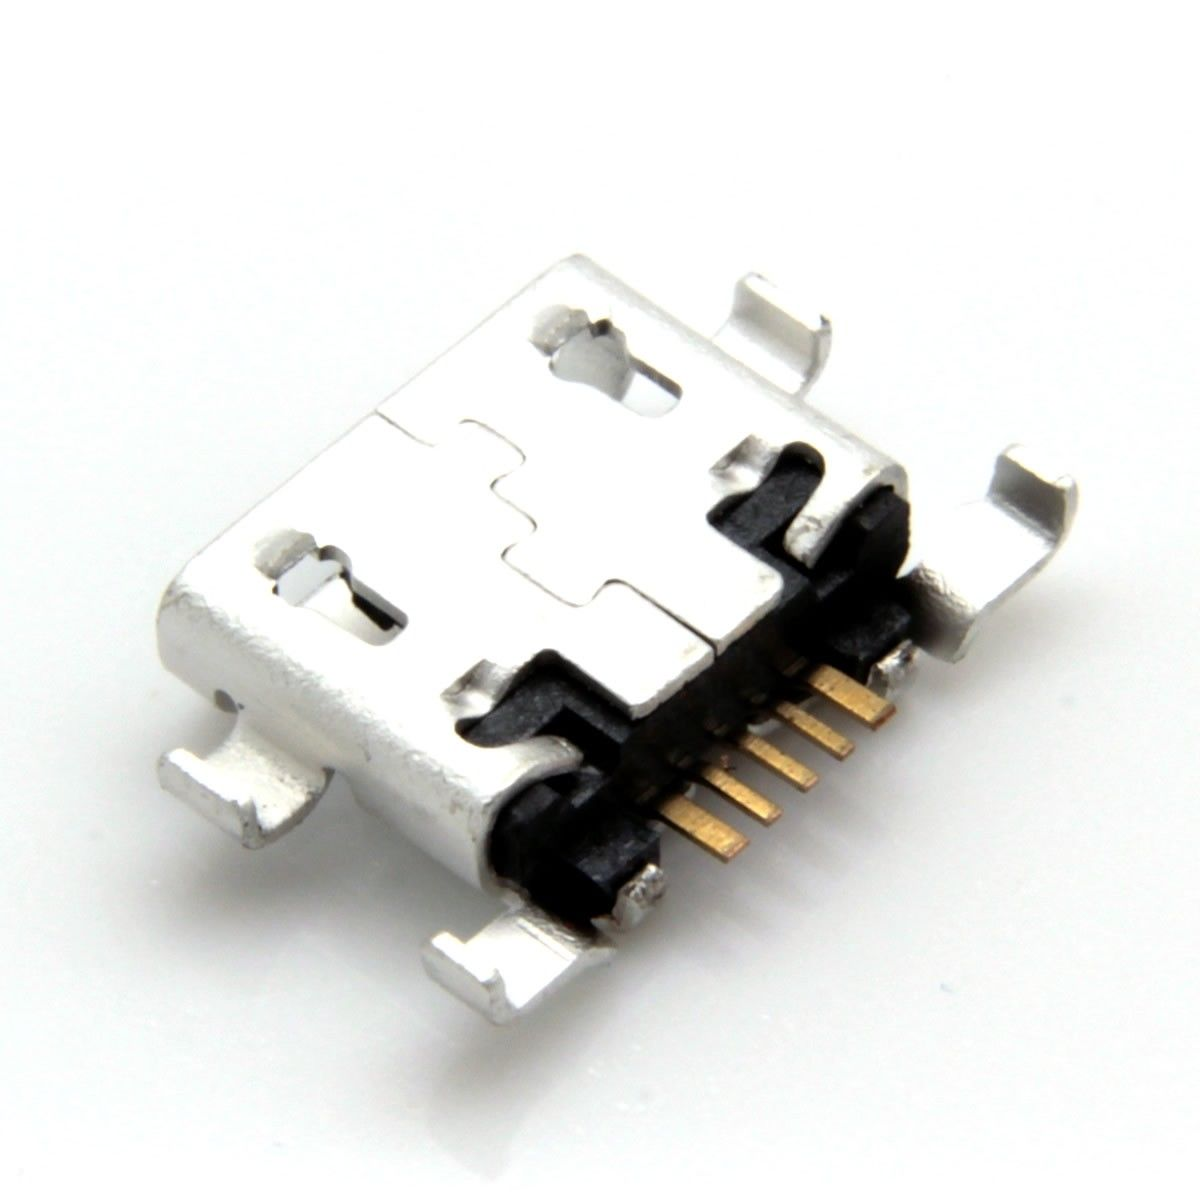 Huawei Y7 2017 2018 Charging Port Dock Connector